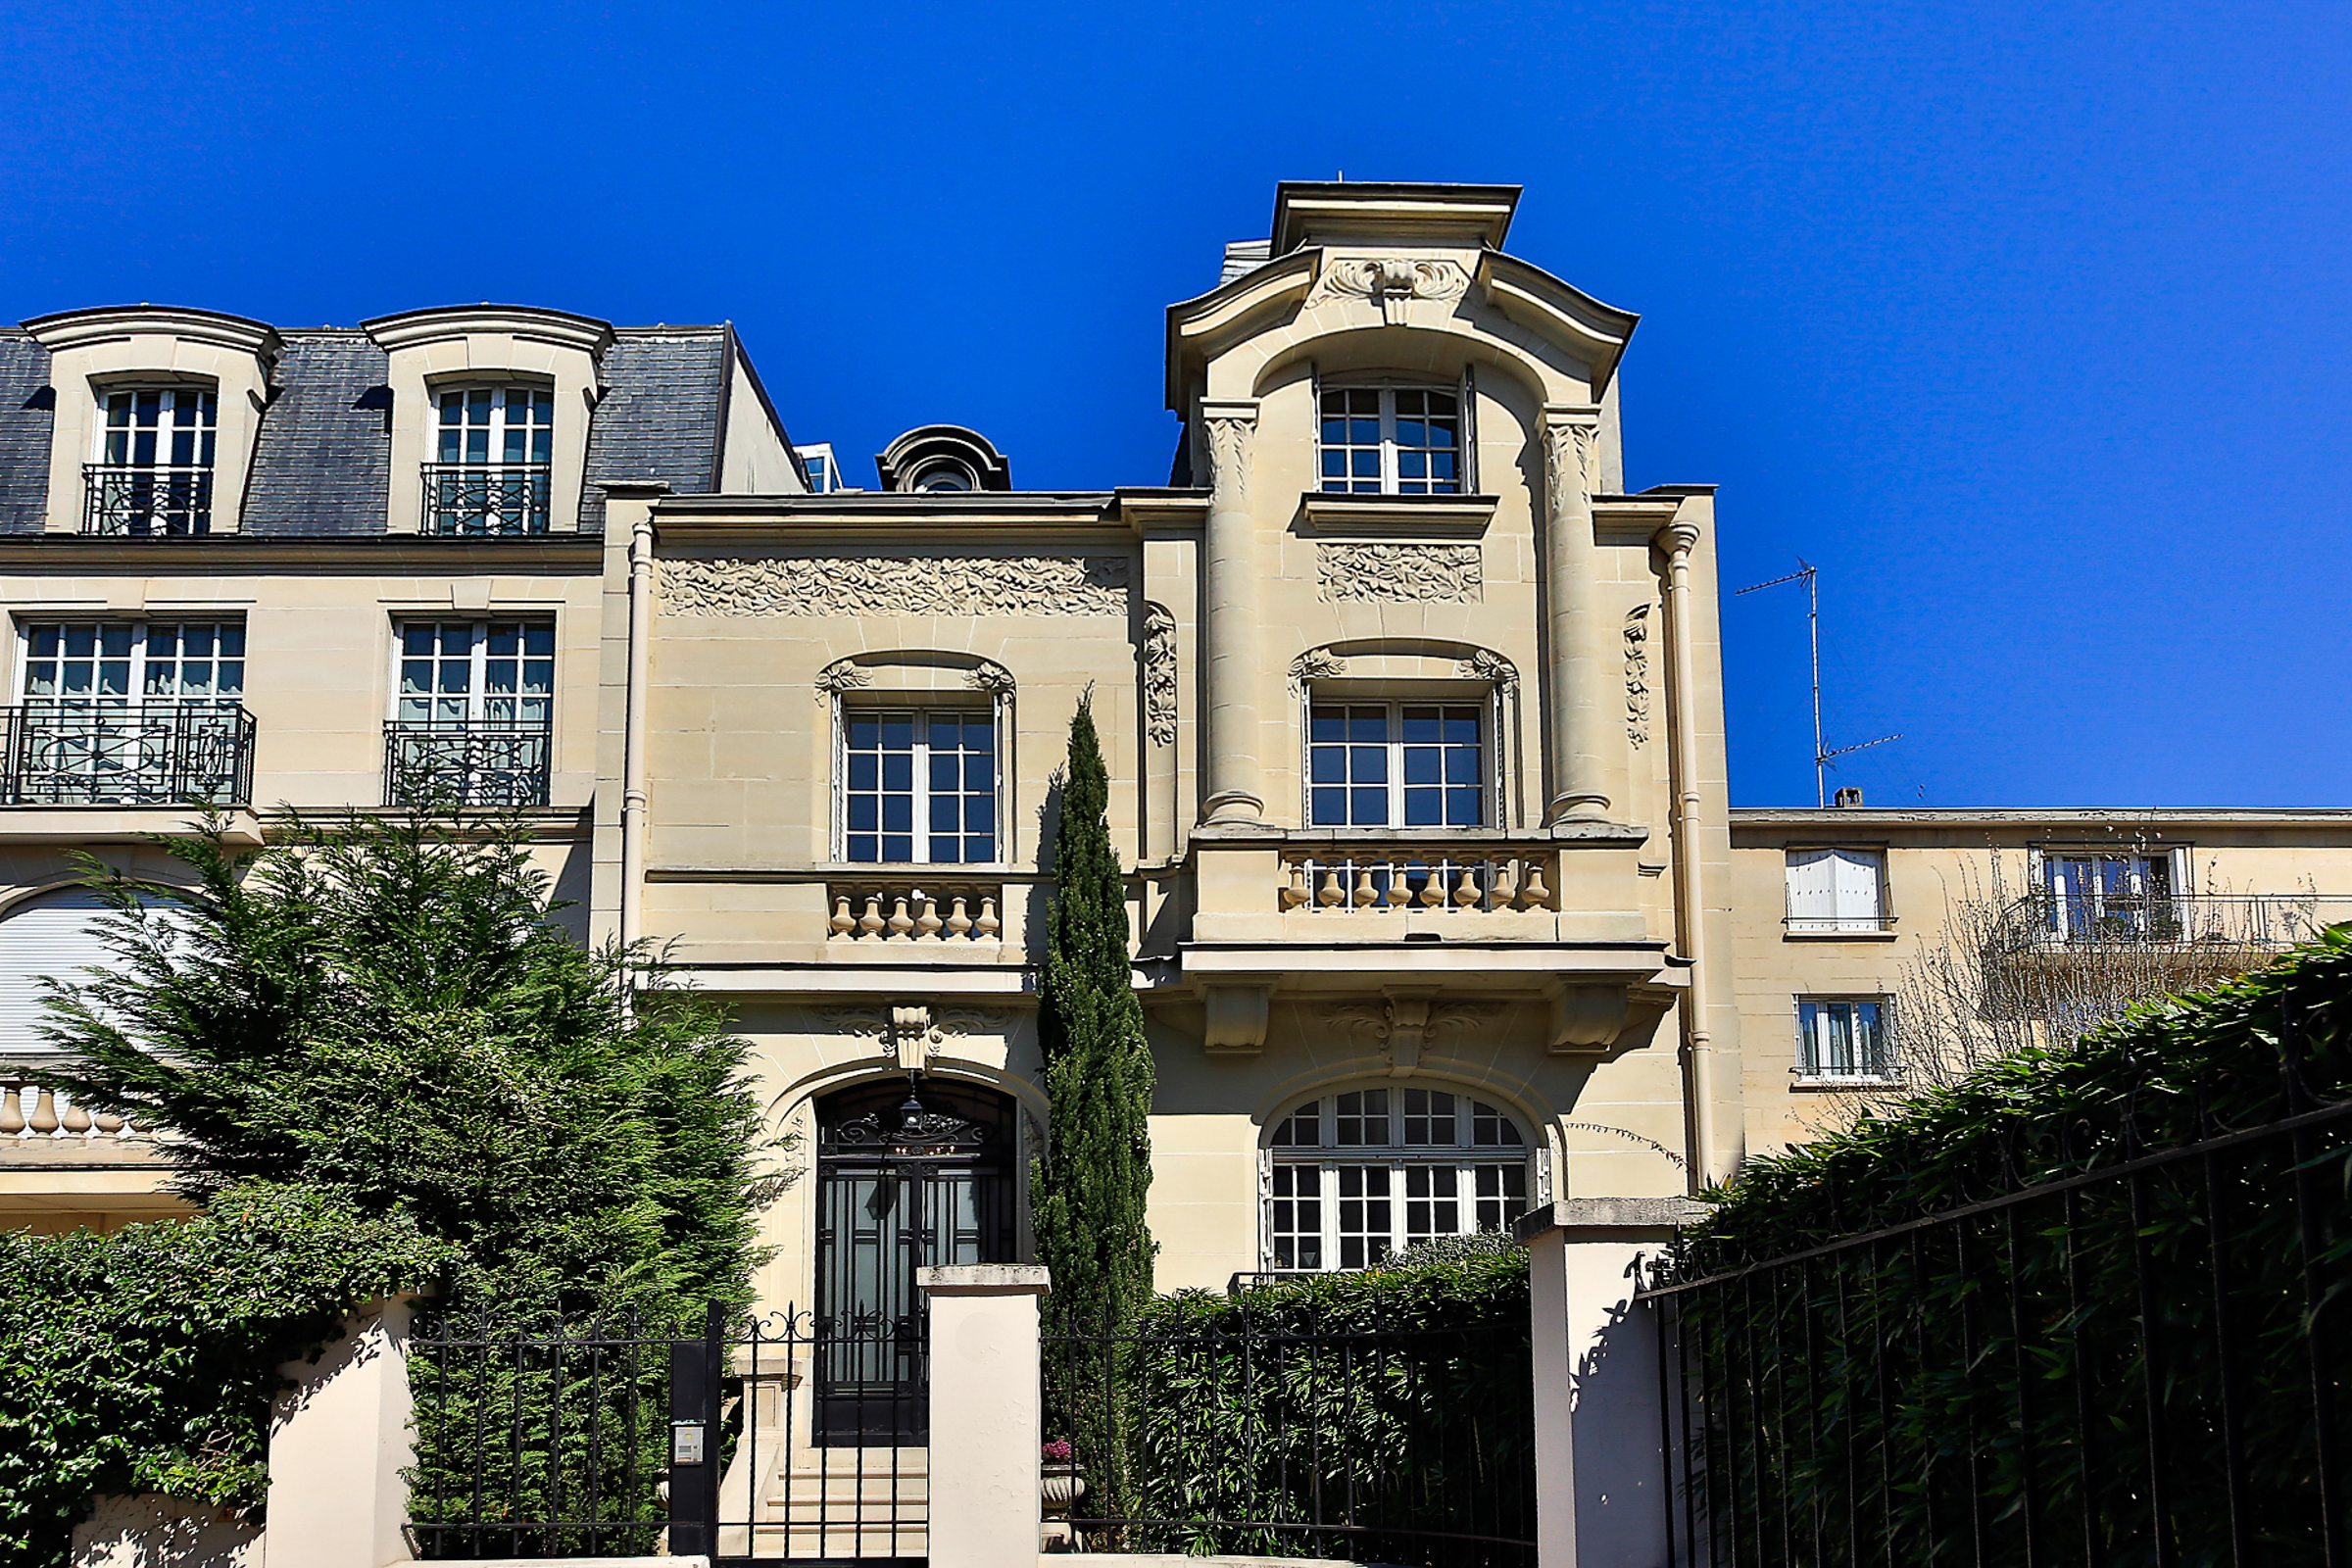 Townhouse for Sale at Private Mansion - Square Chezy Other France, Other Areas In France 92200 France